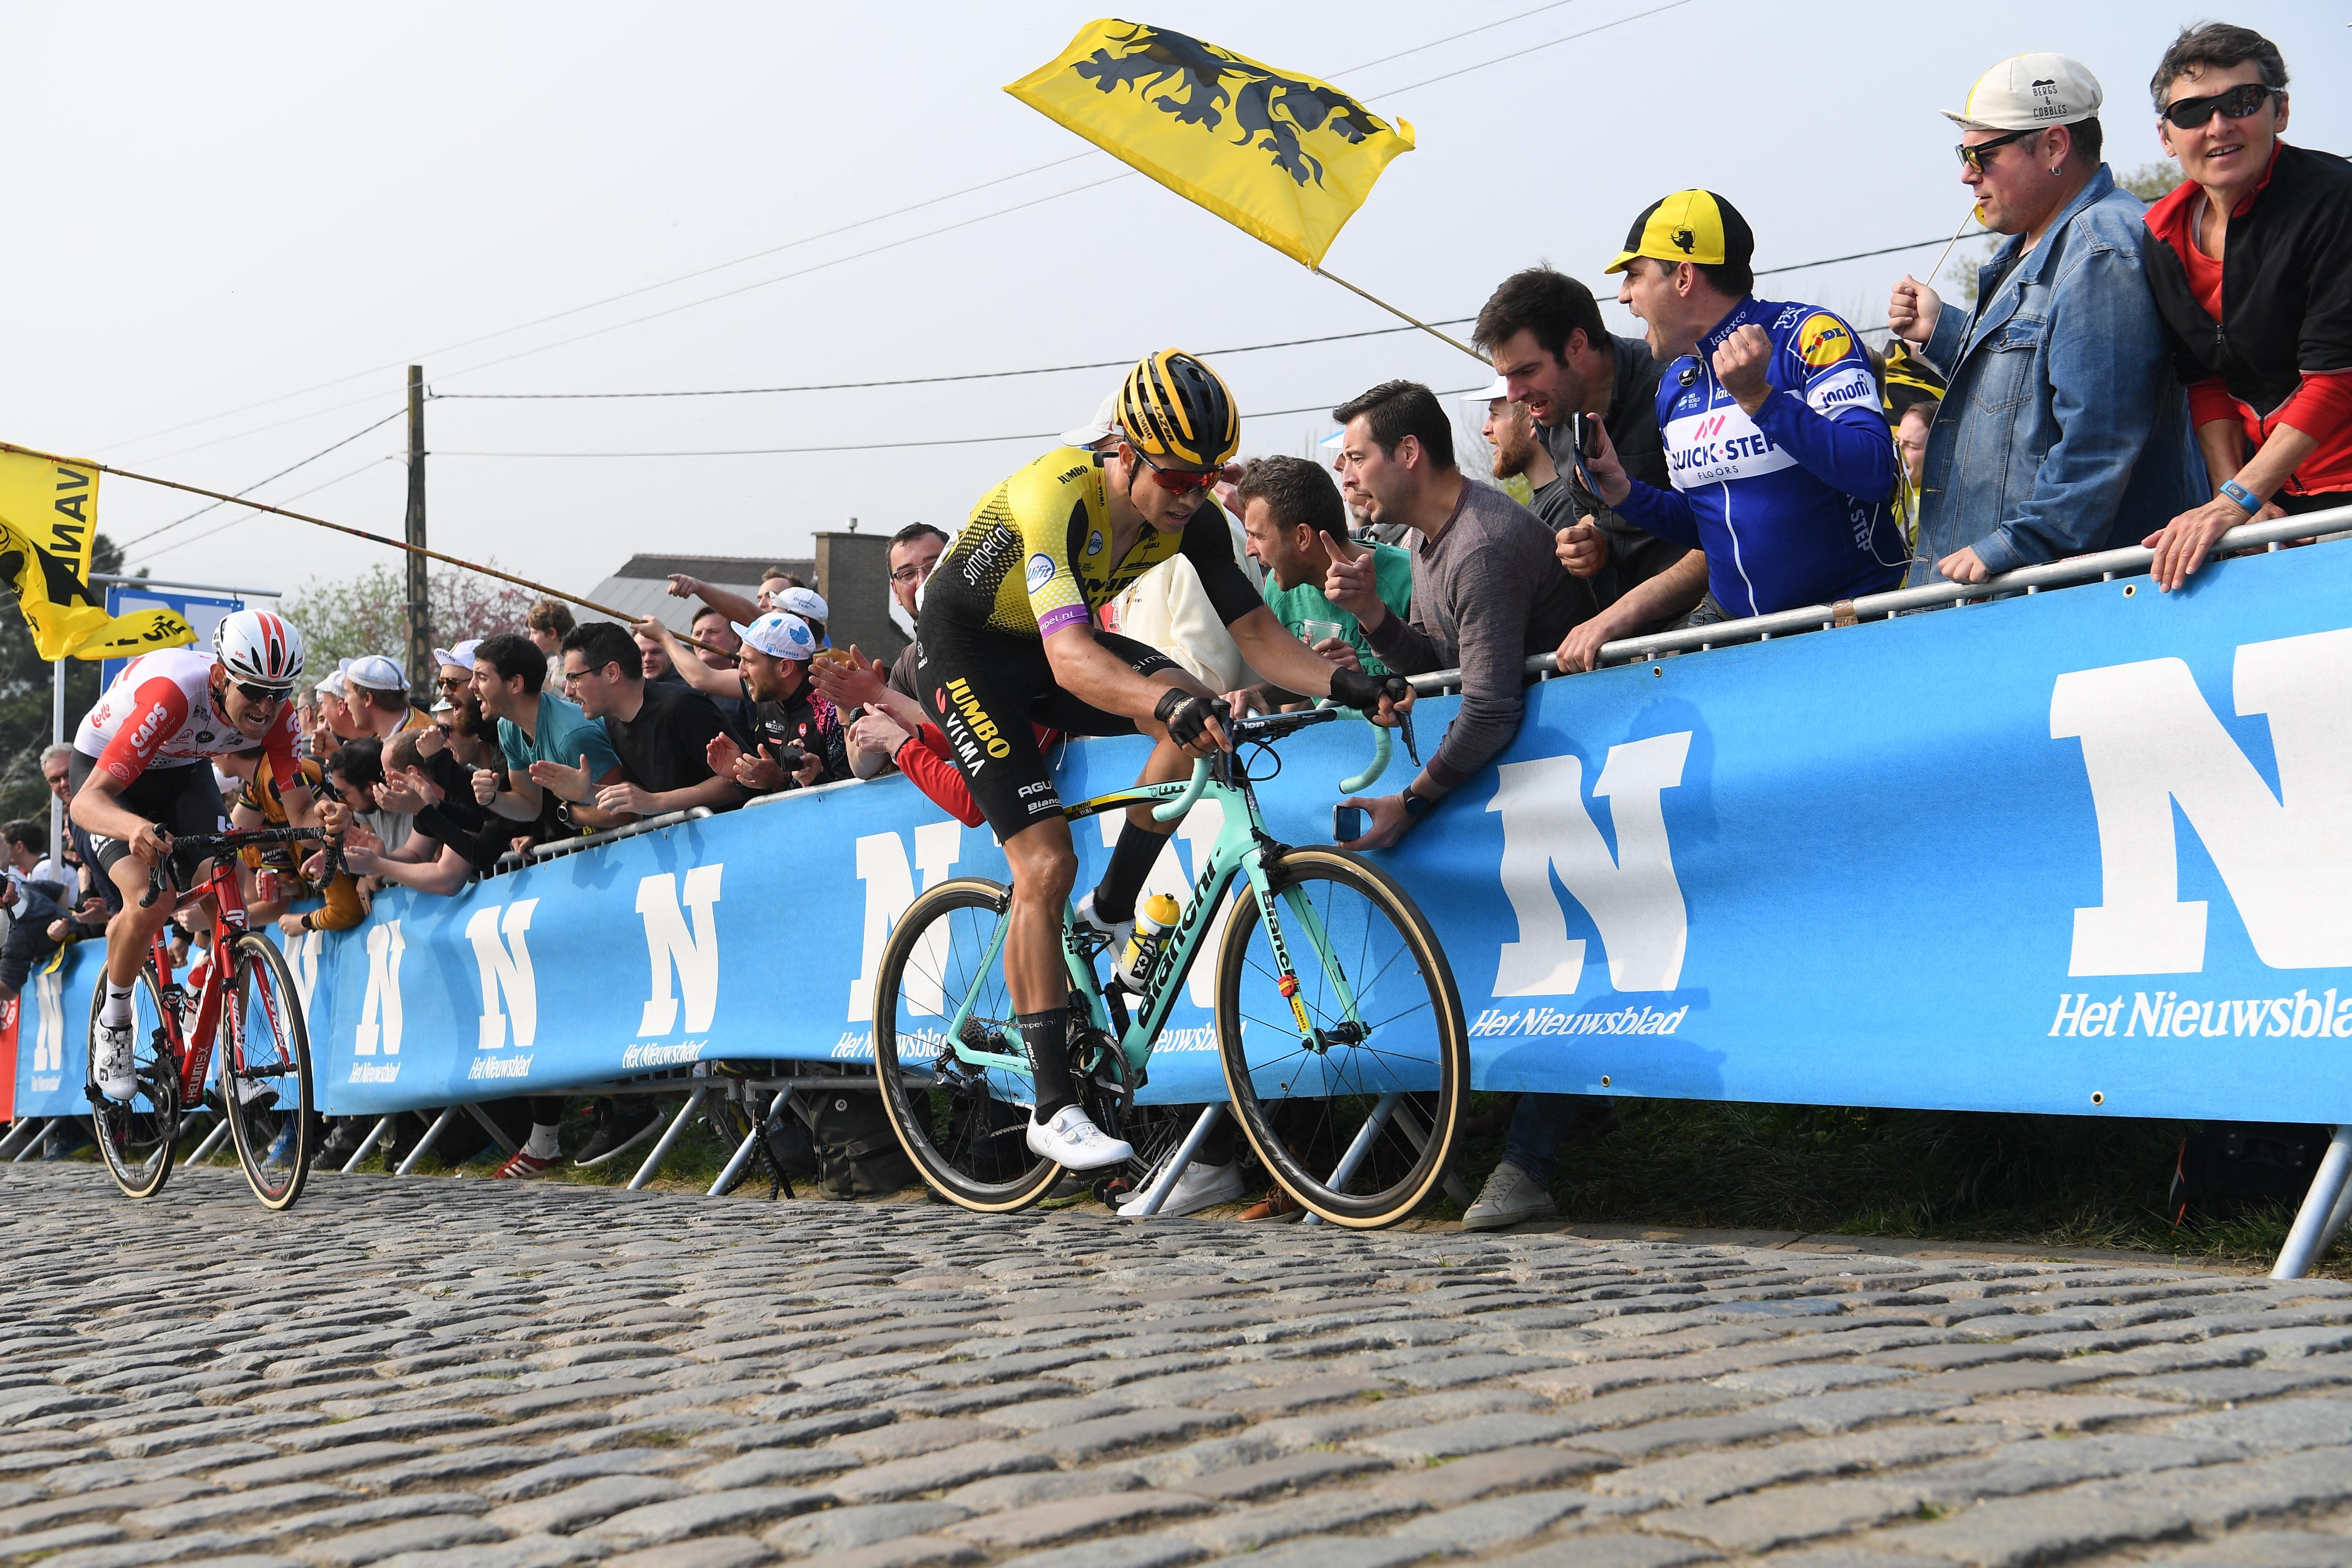 No Primoz Roglic For Tour De France As Wout Van Aert Makes Grand Tour Debut Cyclist